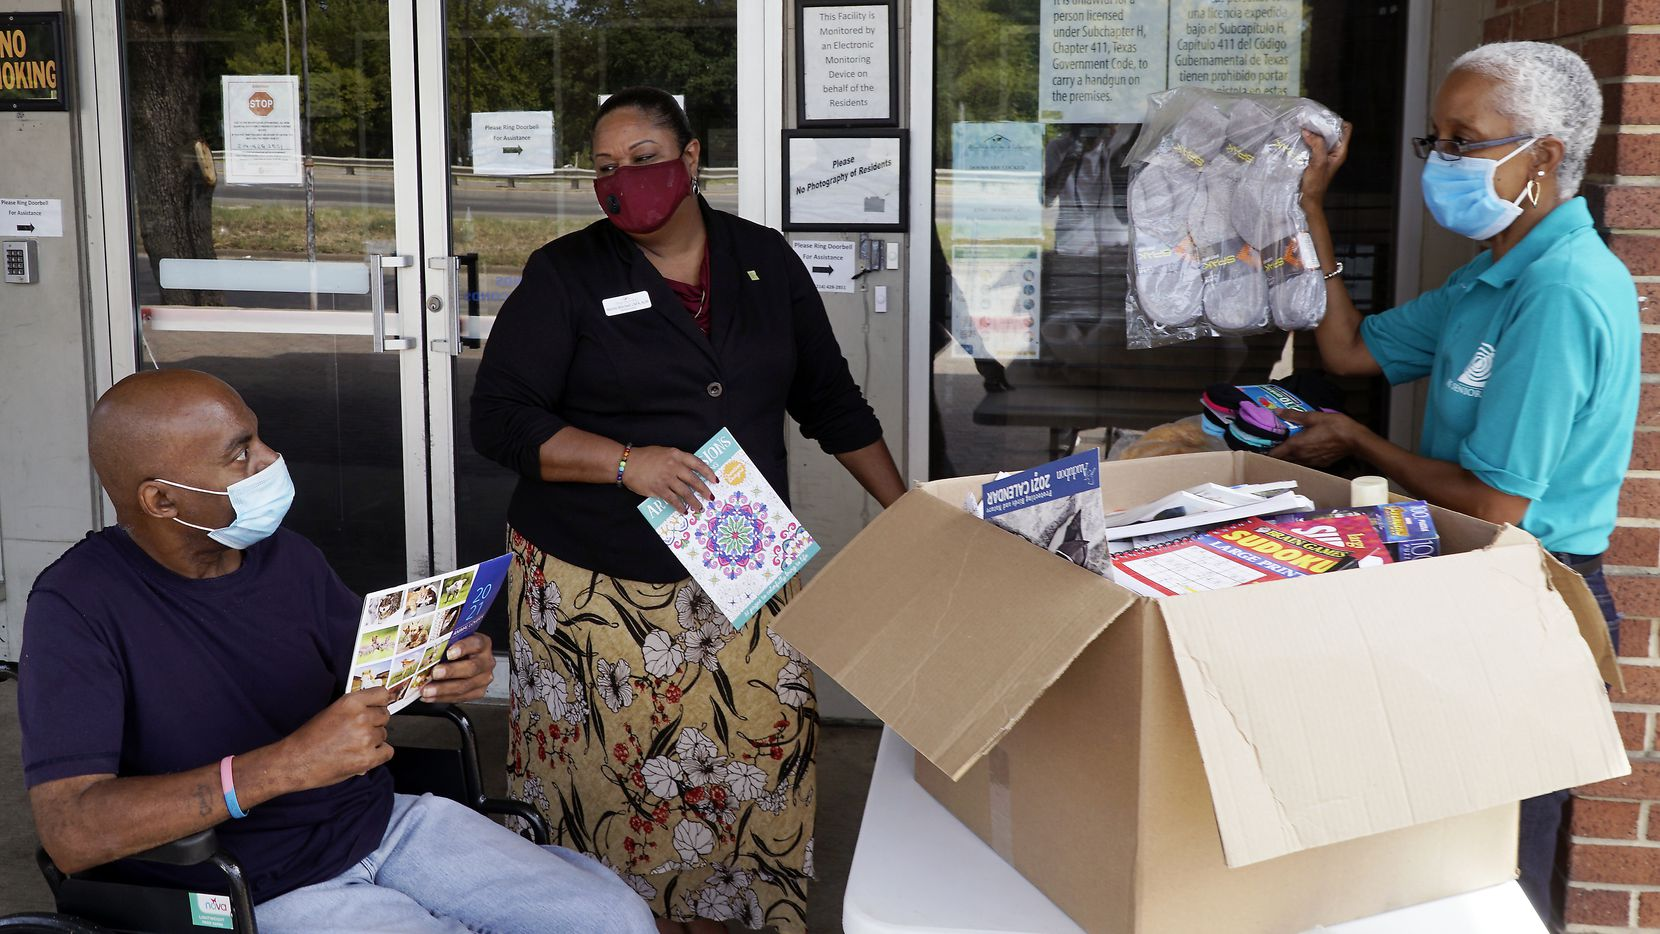 Friendly Visitor Coordinator Marsha Evans (right) delivers donations to Modern Senior Living resident Willie Wilson (wheelchair) and Administrator Monté Mitchell in Dallas, Texas on Friday, August 14, 2020.  (Lawrence Jenkins/Special Contributor)